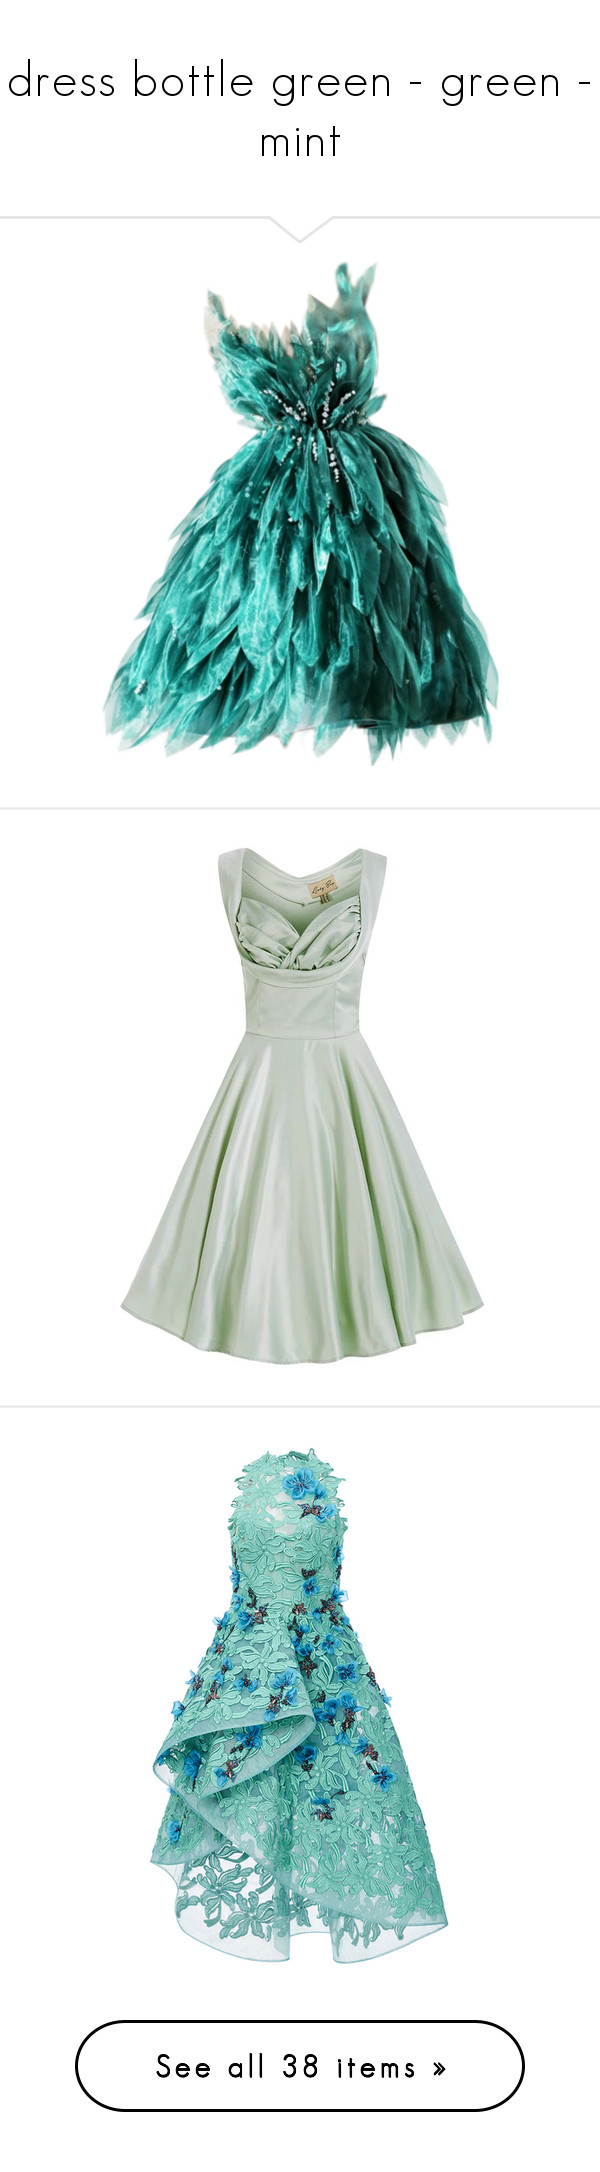 dress bottle green - green - mint\